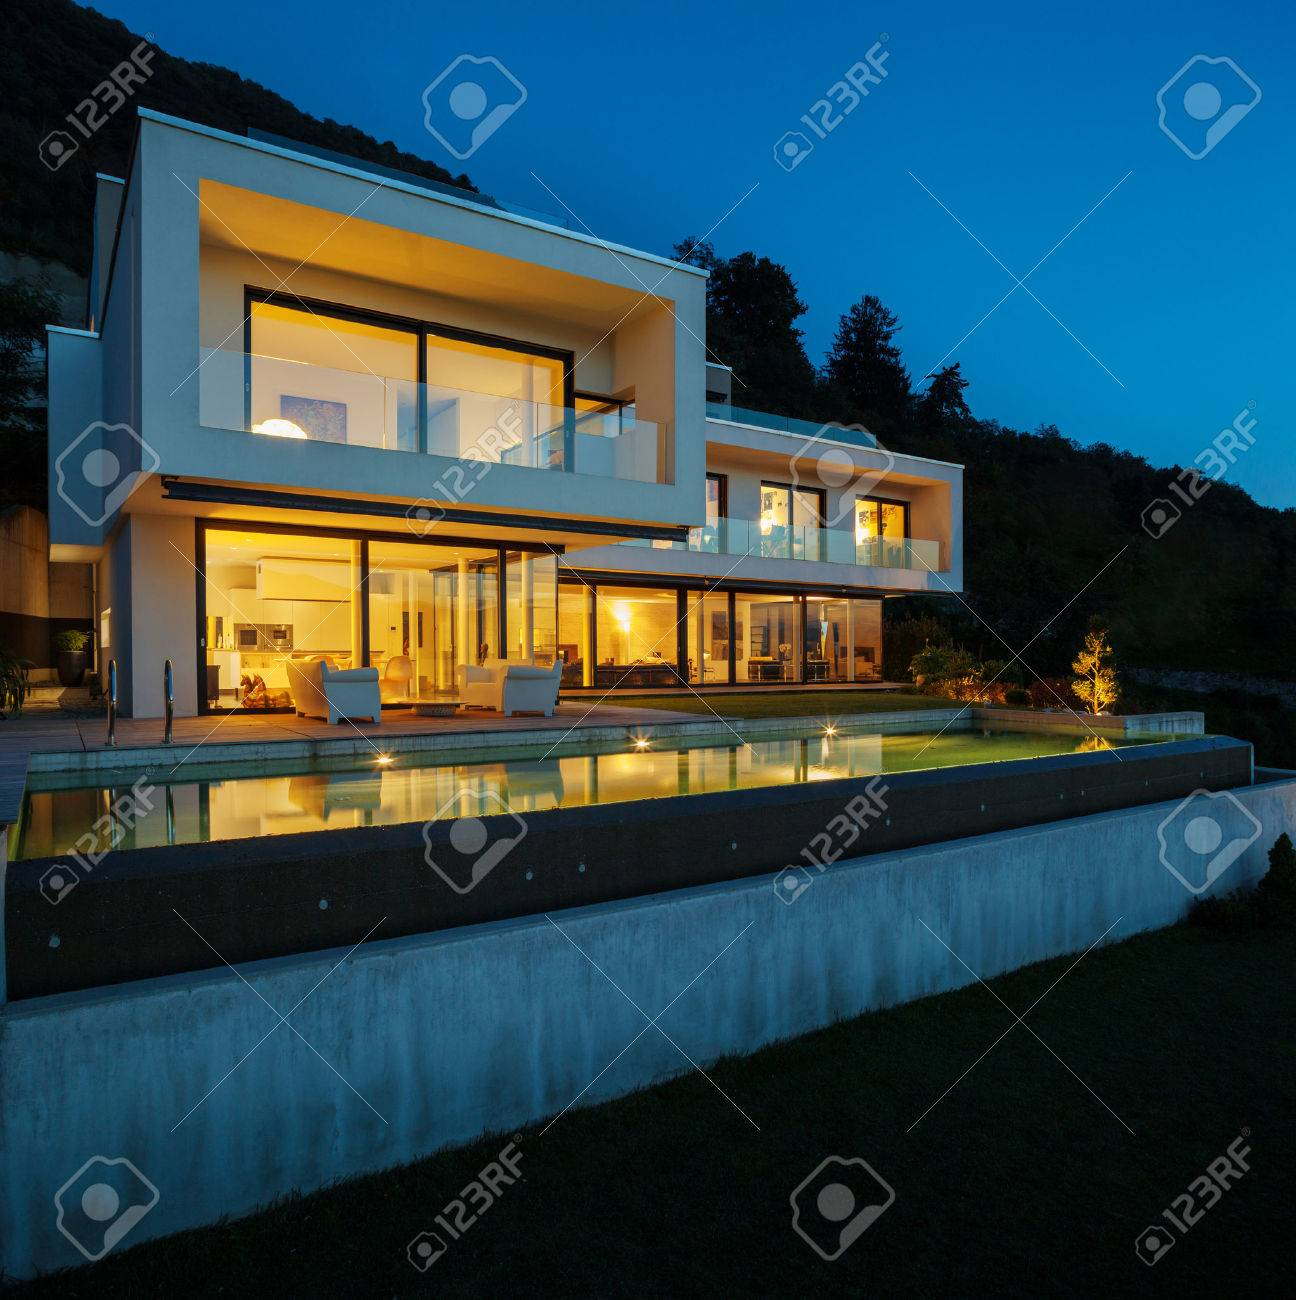 modern house with pool and garden summer time stock photo modern house with pool and garden summer time stock photo 32377263